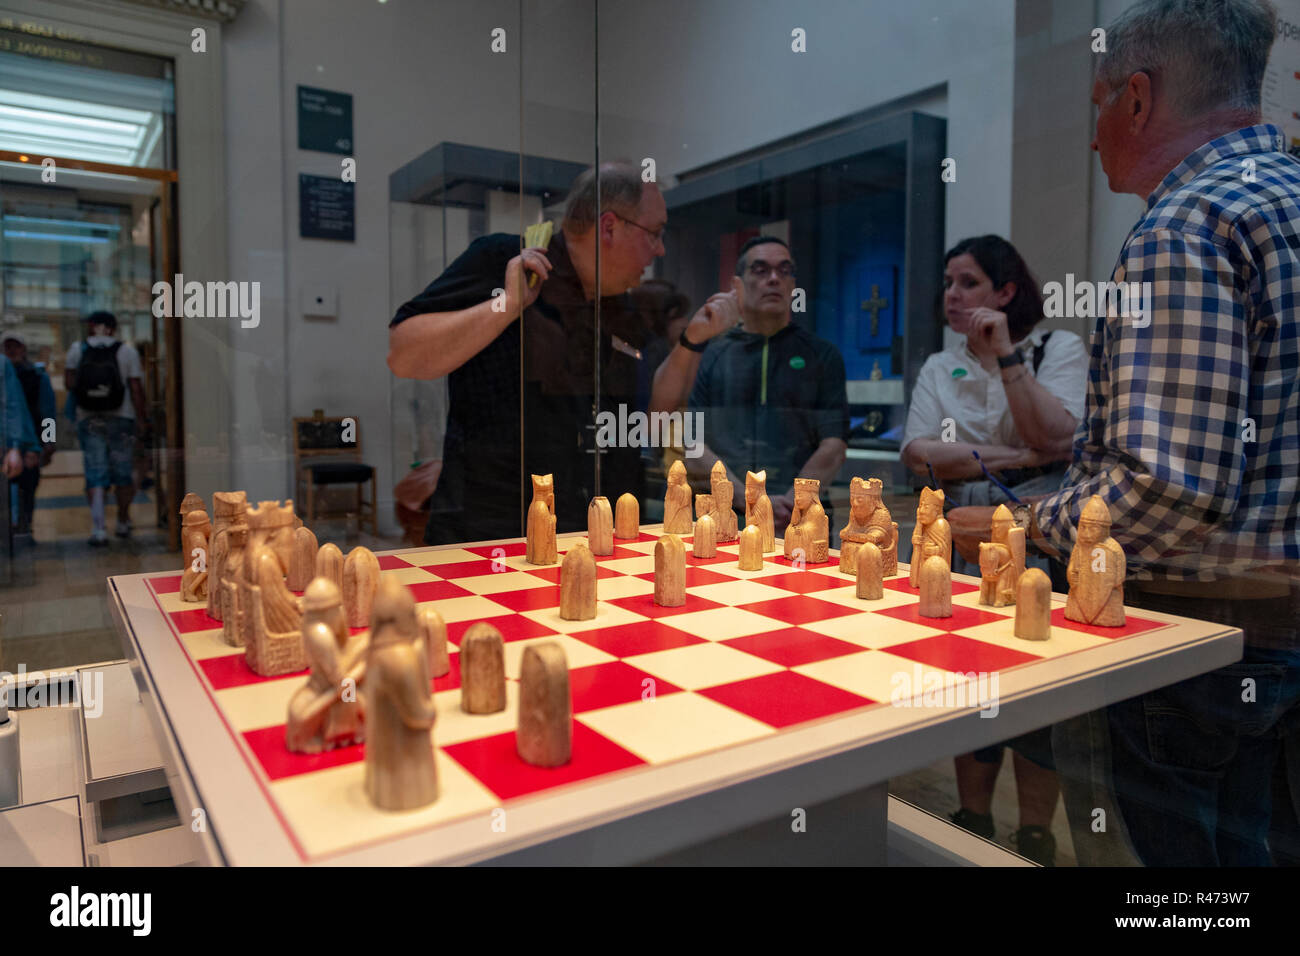 The 12thC Lewis Chessmen in the British Museum, London, England, UK - Stock Image